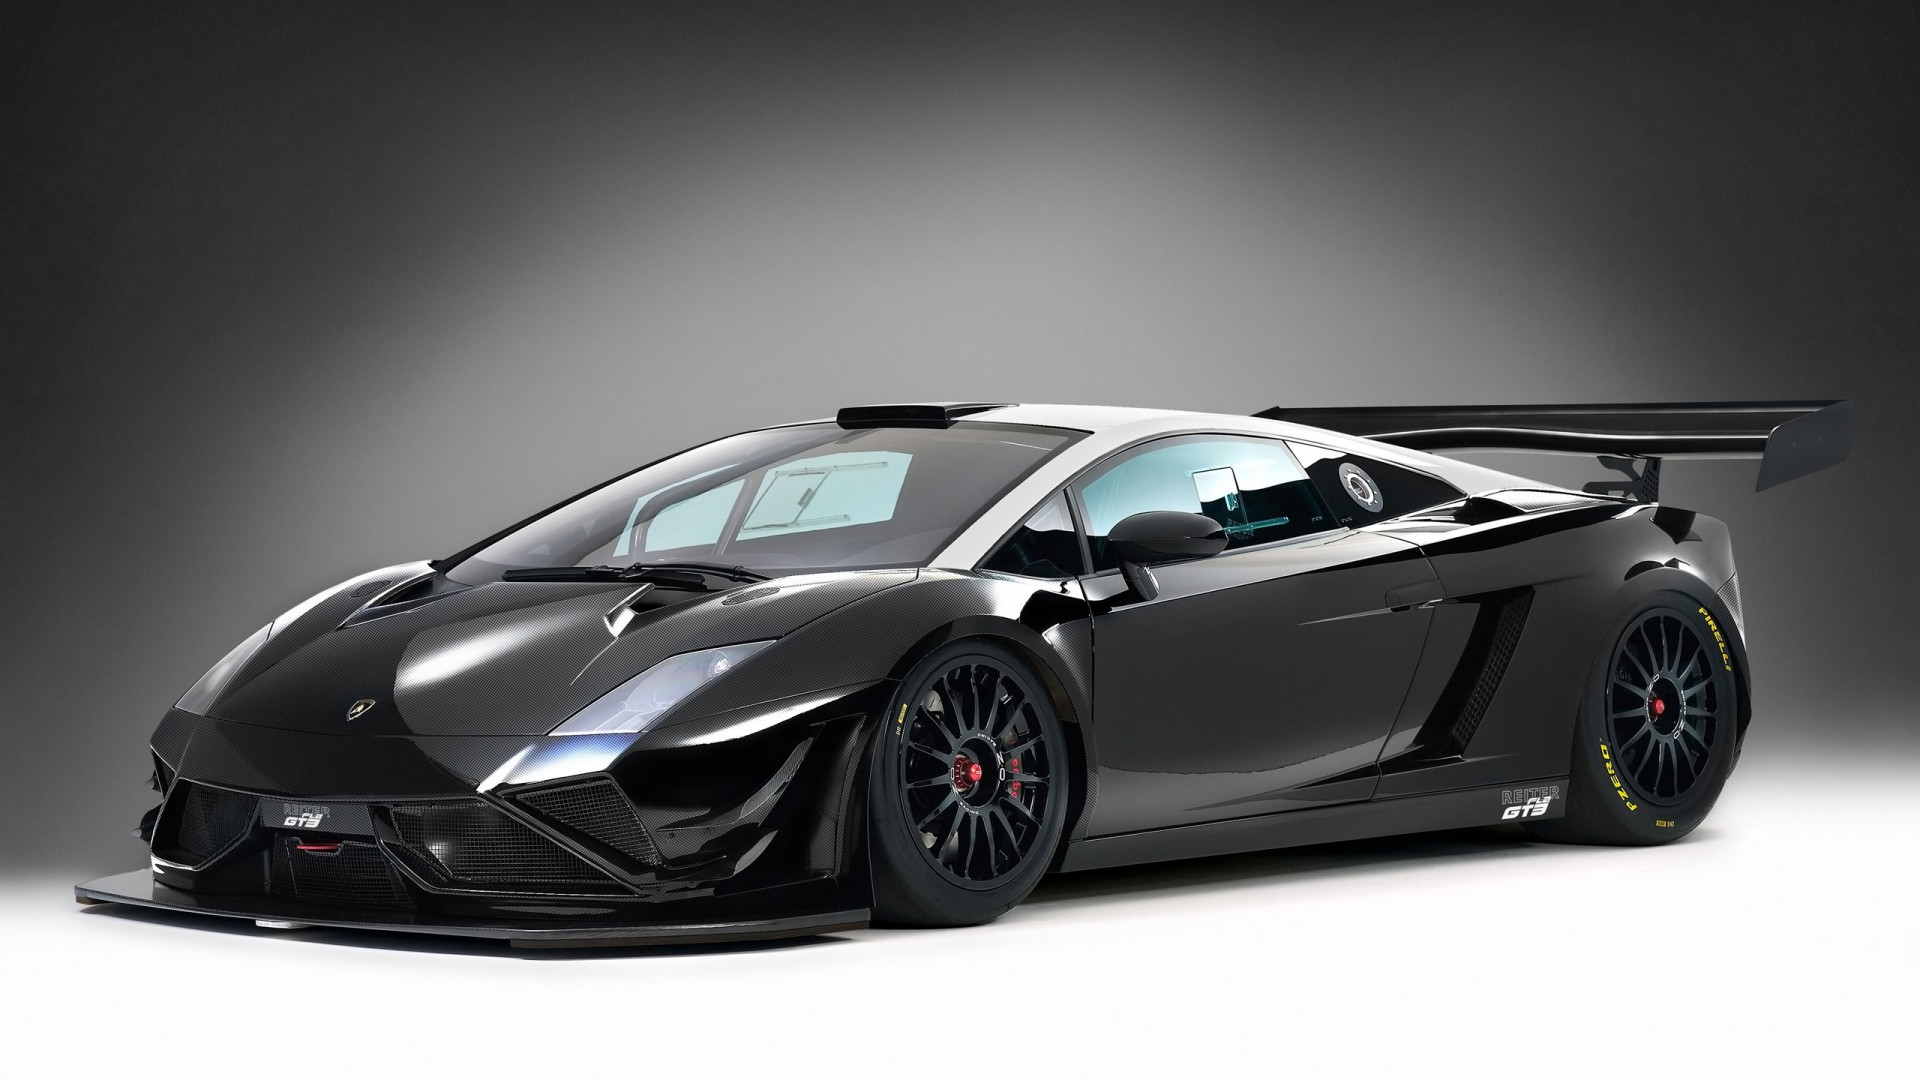 2013 Lamborghini Gallardo GT3 FL2 By Reiter Engineering